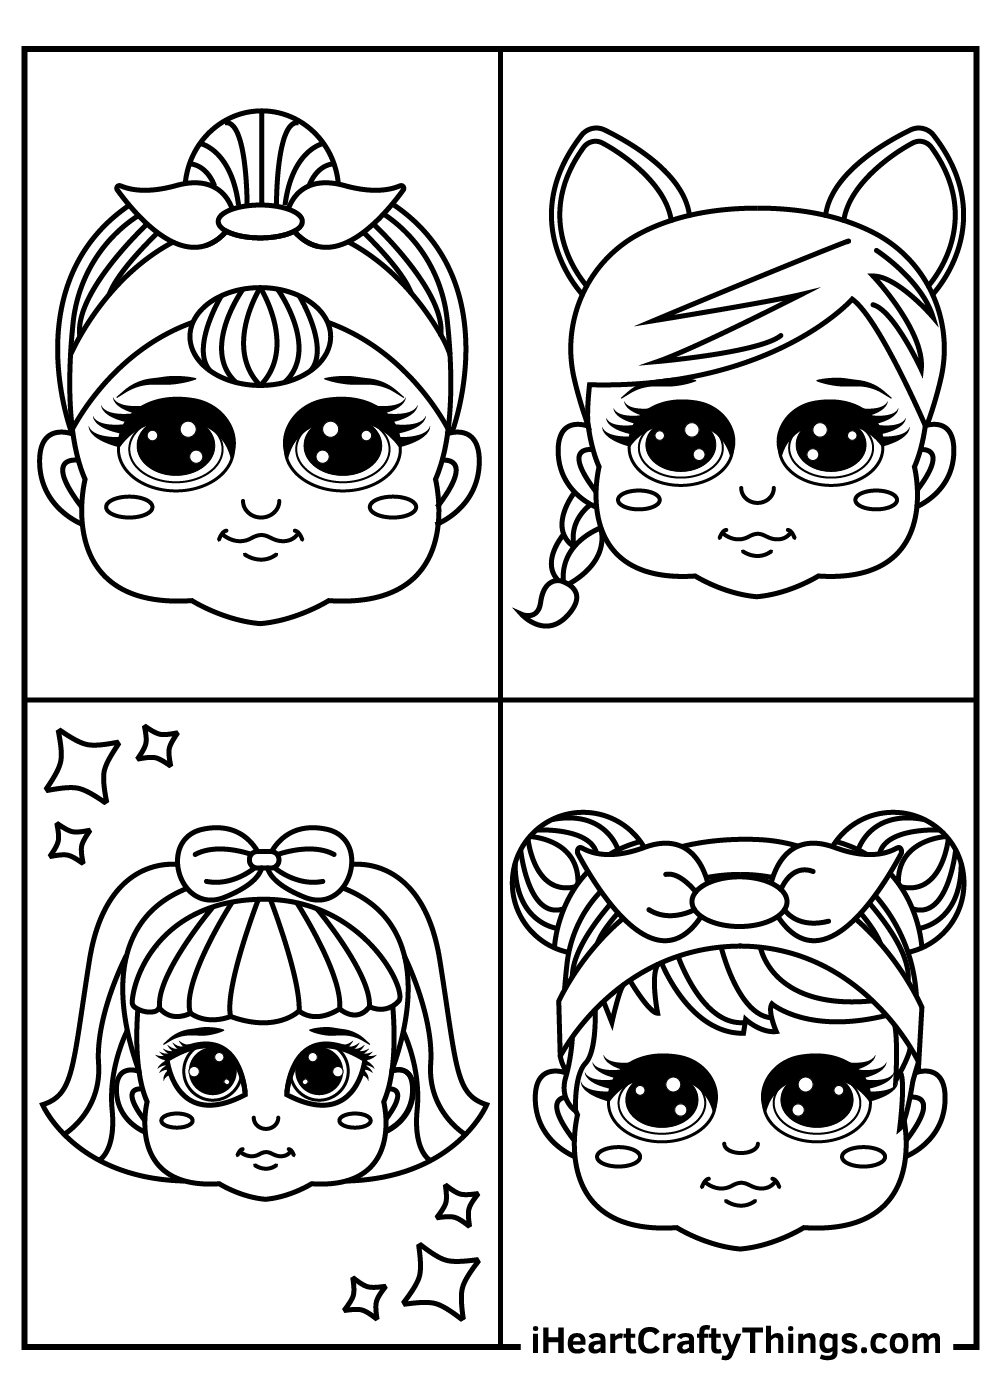 heads of lol dolls coloring pages free printable